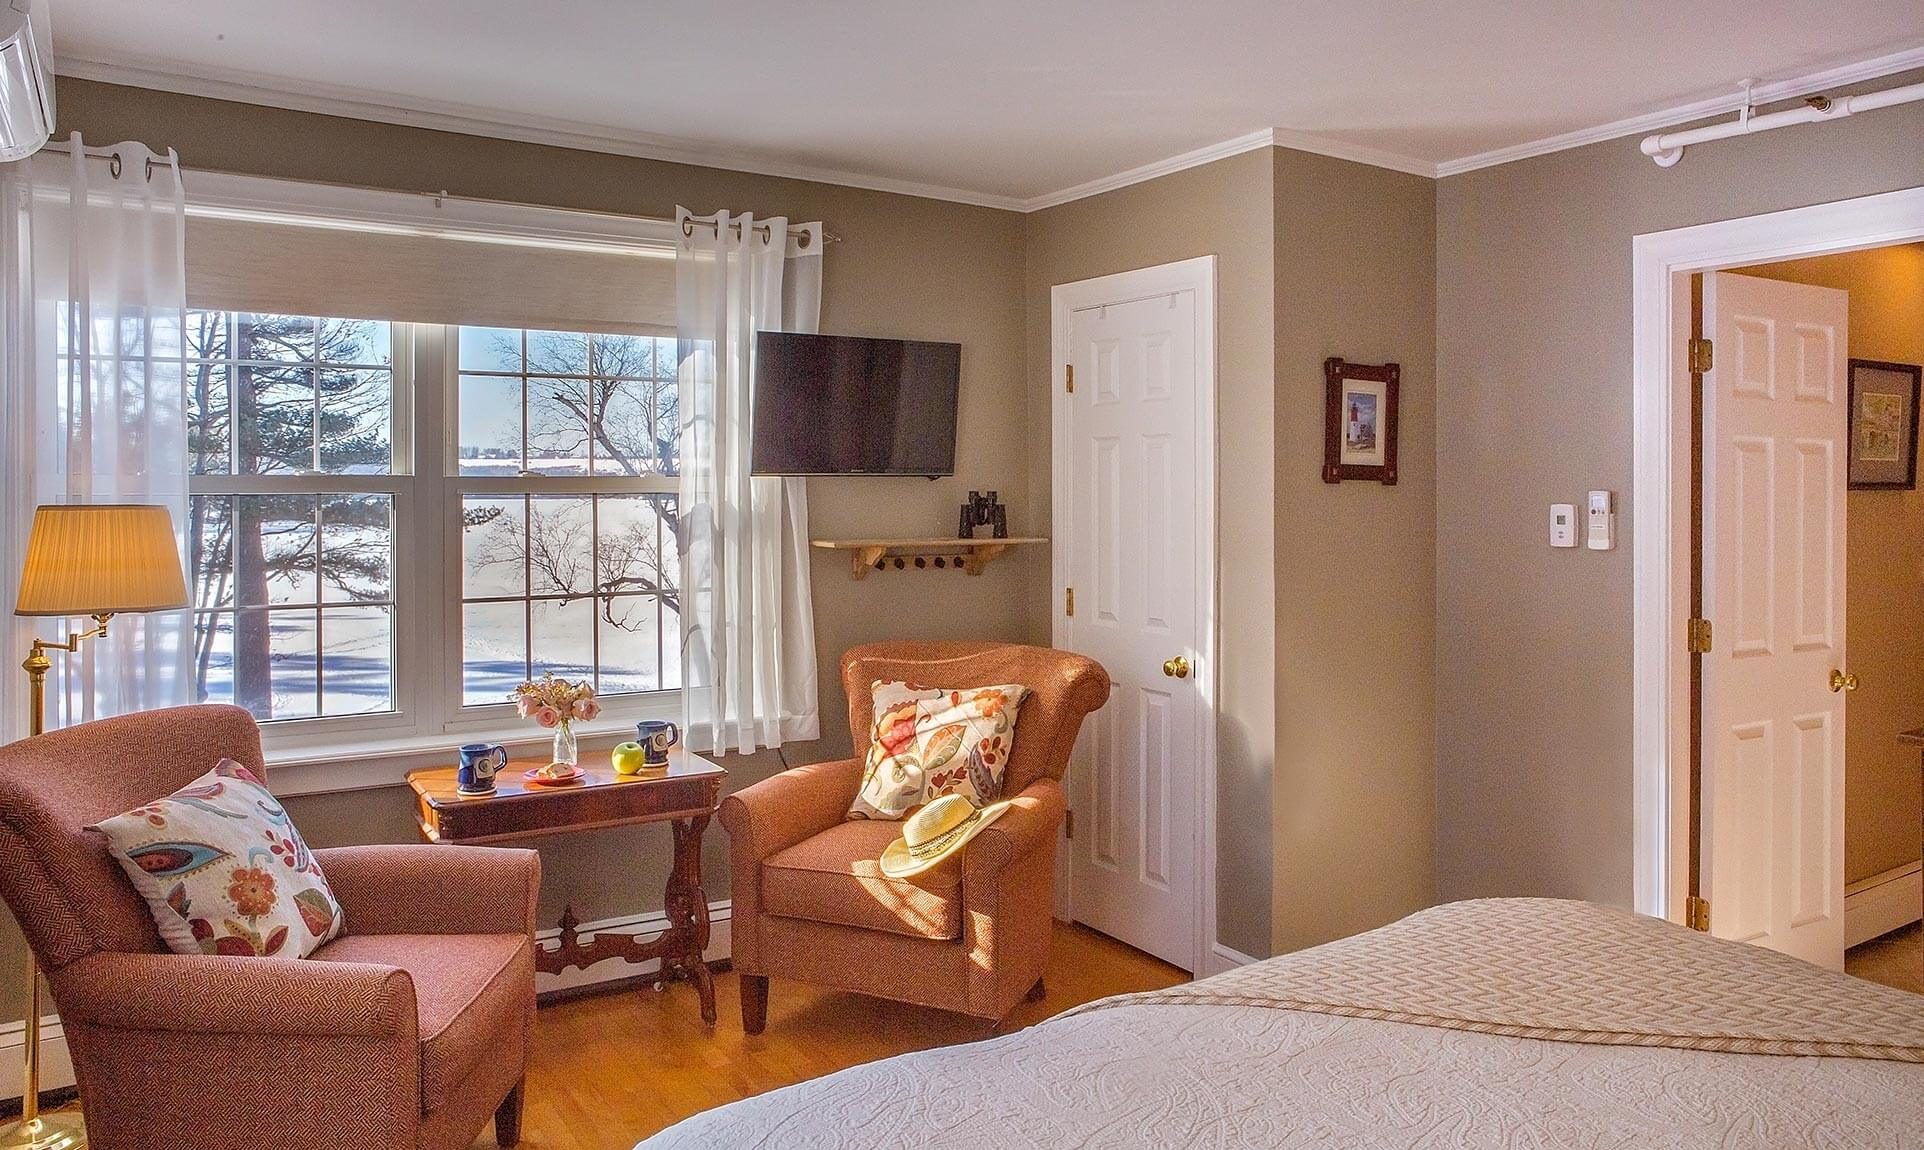 Comfortable white bed across from two plush sitting chairs and window